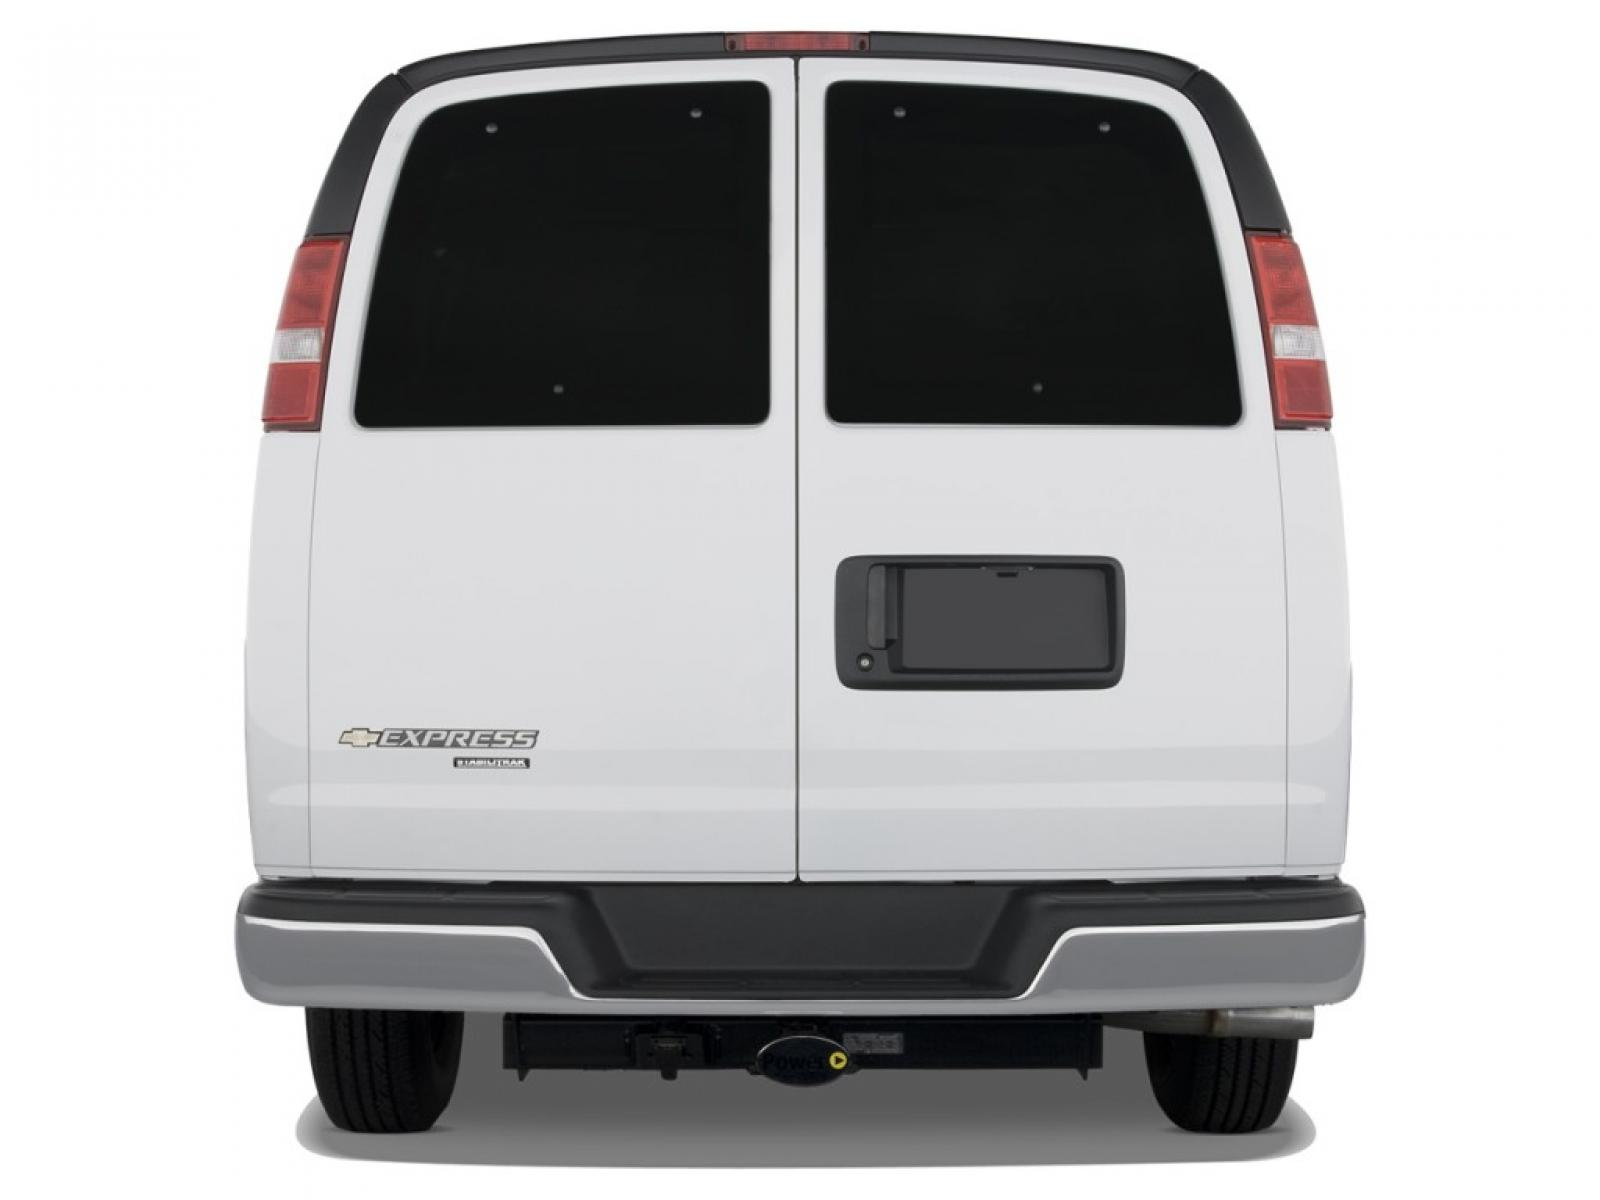 2012 Chevrolet Express Information And Photos Zombiedrive 06 Chevy C5500 Transmission Wiring Diagrams 800 1024 1280 1600 Origin